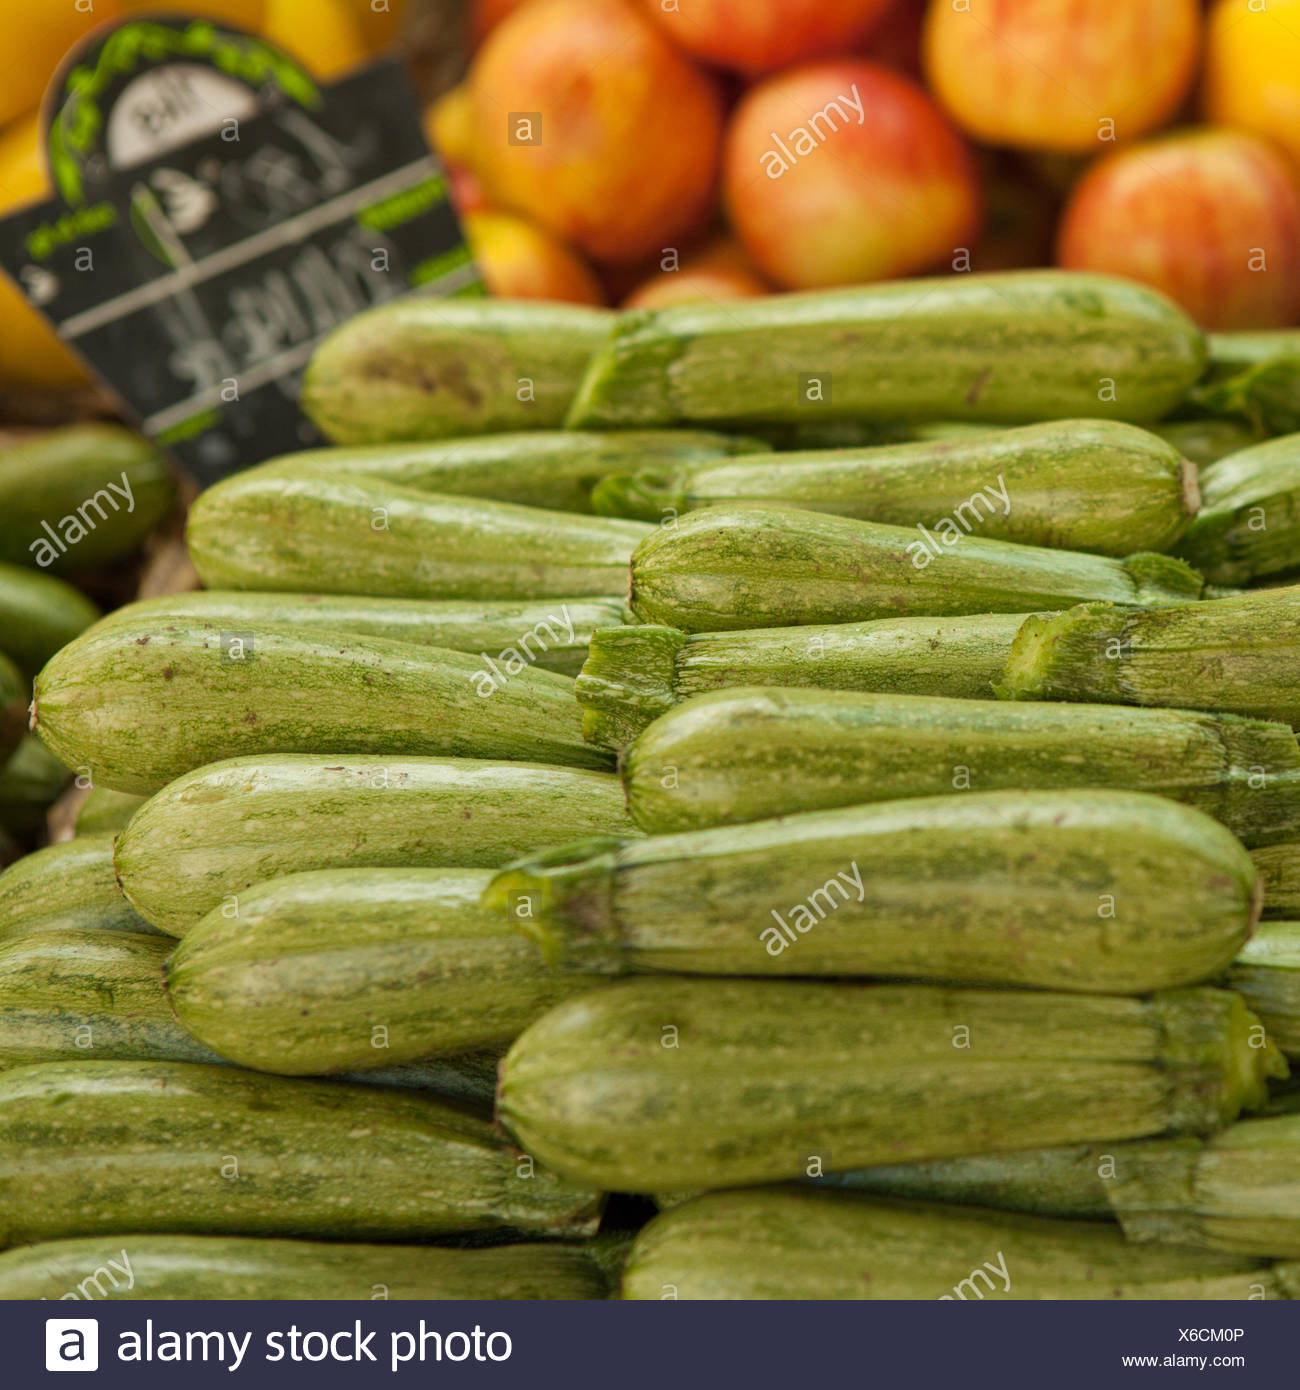 Close-Up Of Gourds At Market Stall - Stock Image